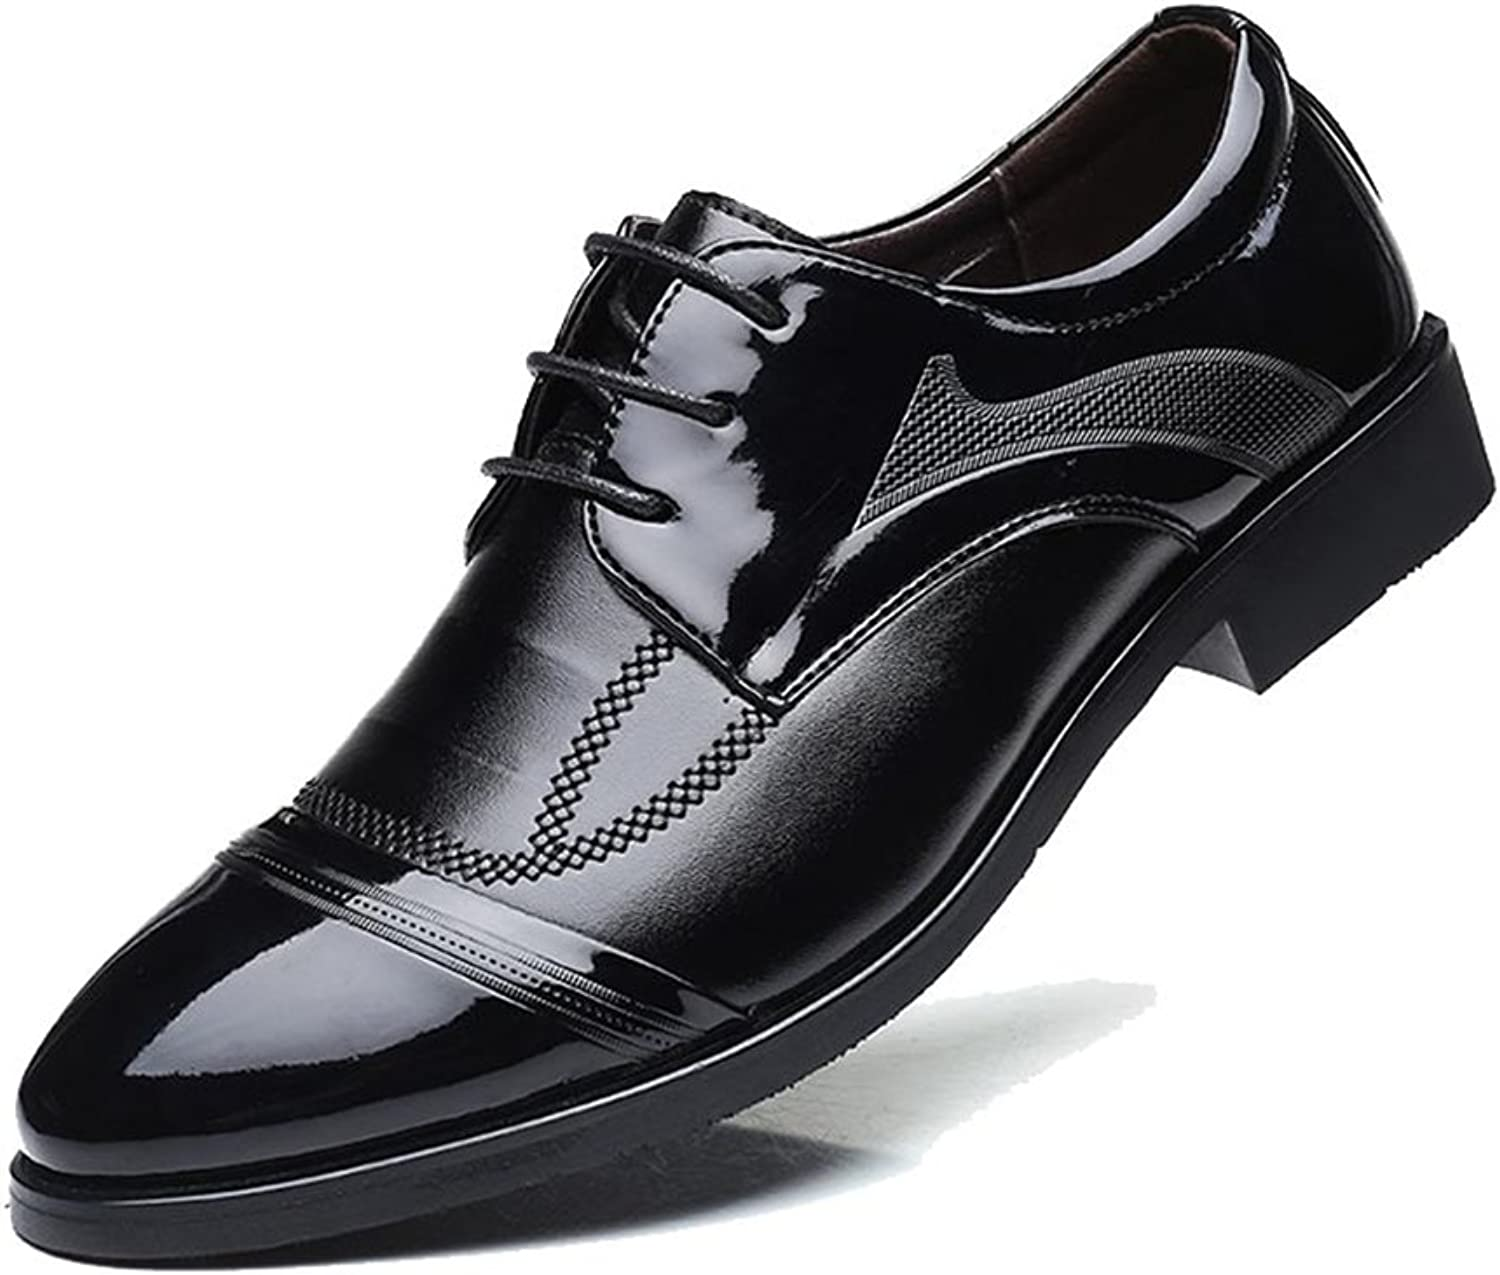 GLSHI Men's shoes Fashion Casual Business Leather Coat of Paint shoes Black Pointed Toe Formal Business Work